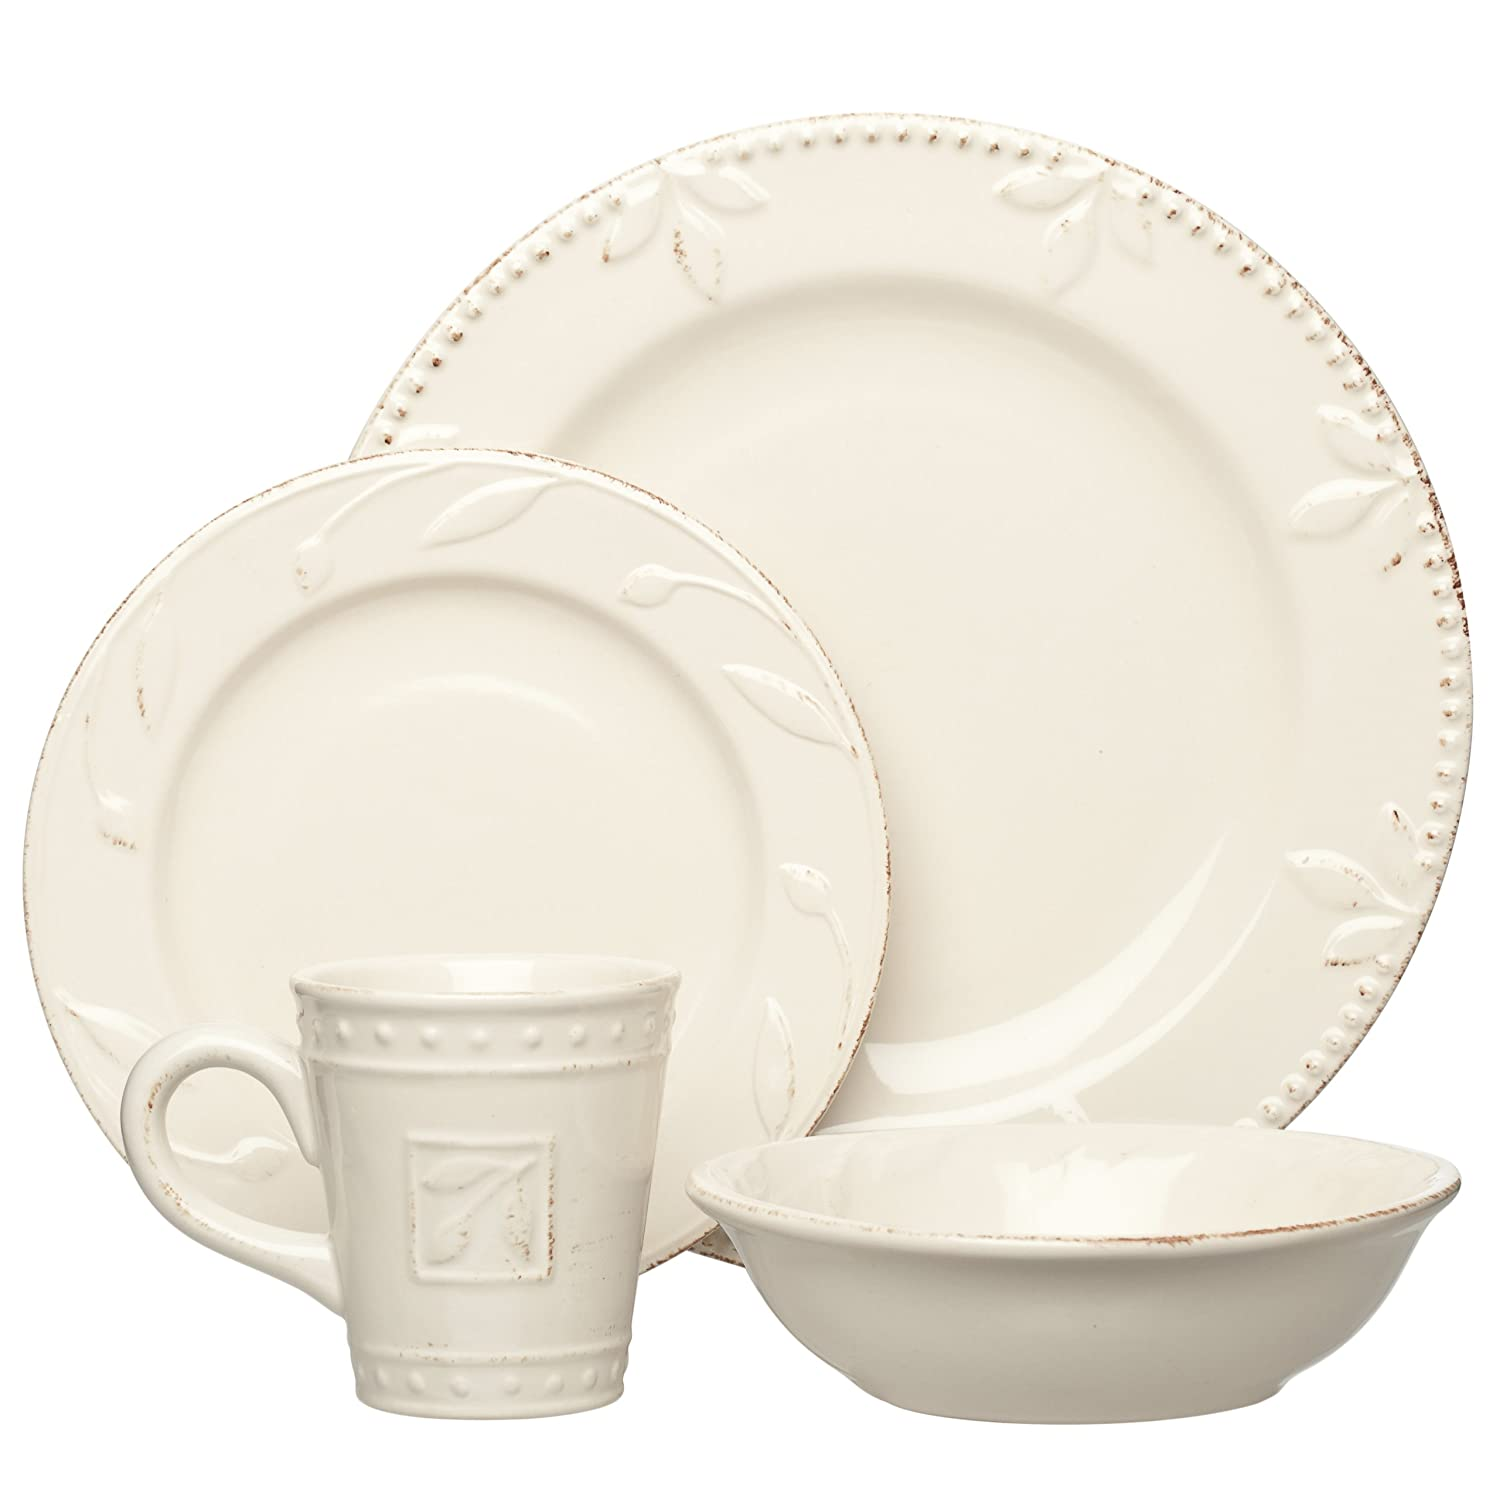 Amazon.com | Signature Housewares Sorrento Collection Stoneware 4-Piece Dinnerware Set Ivory Antiqued Finish Dishes Dinnerware Sets  sc 1 st  Amazon.com & Amazon.com | Signature Housewares Sorrento Collection Stoneware 4 ...